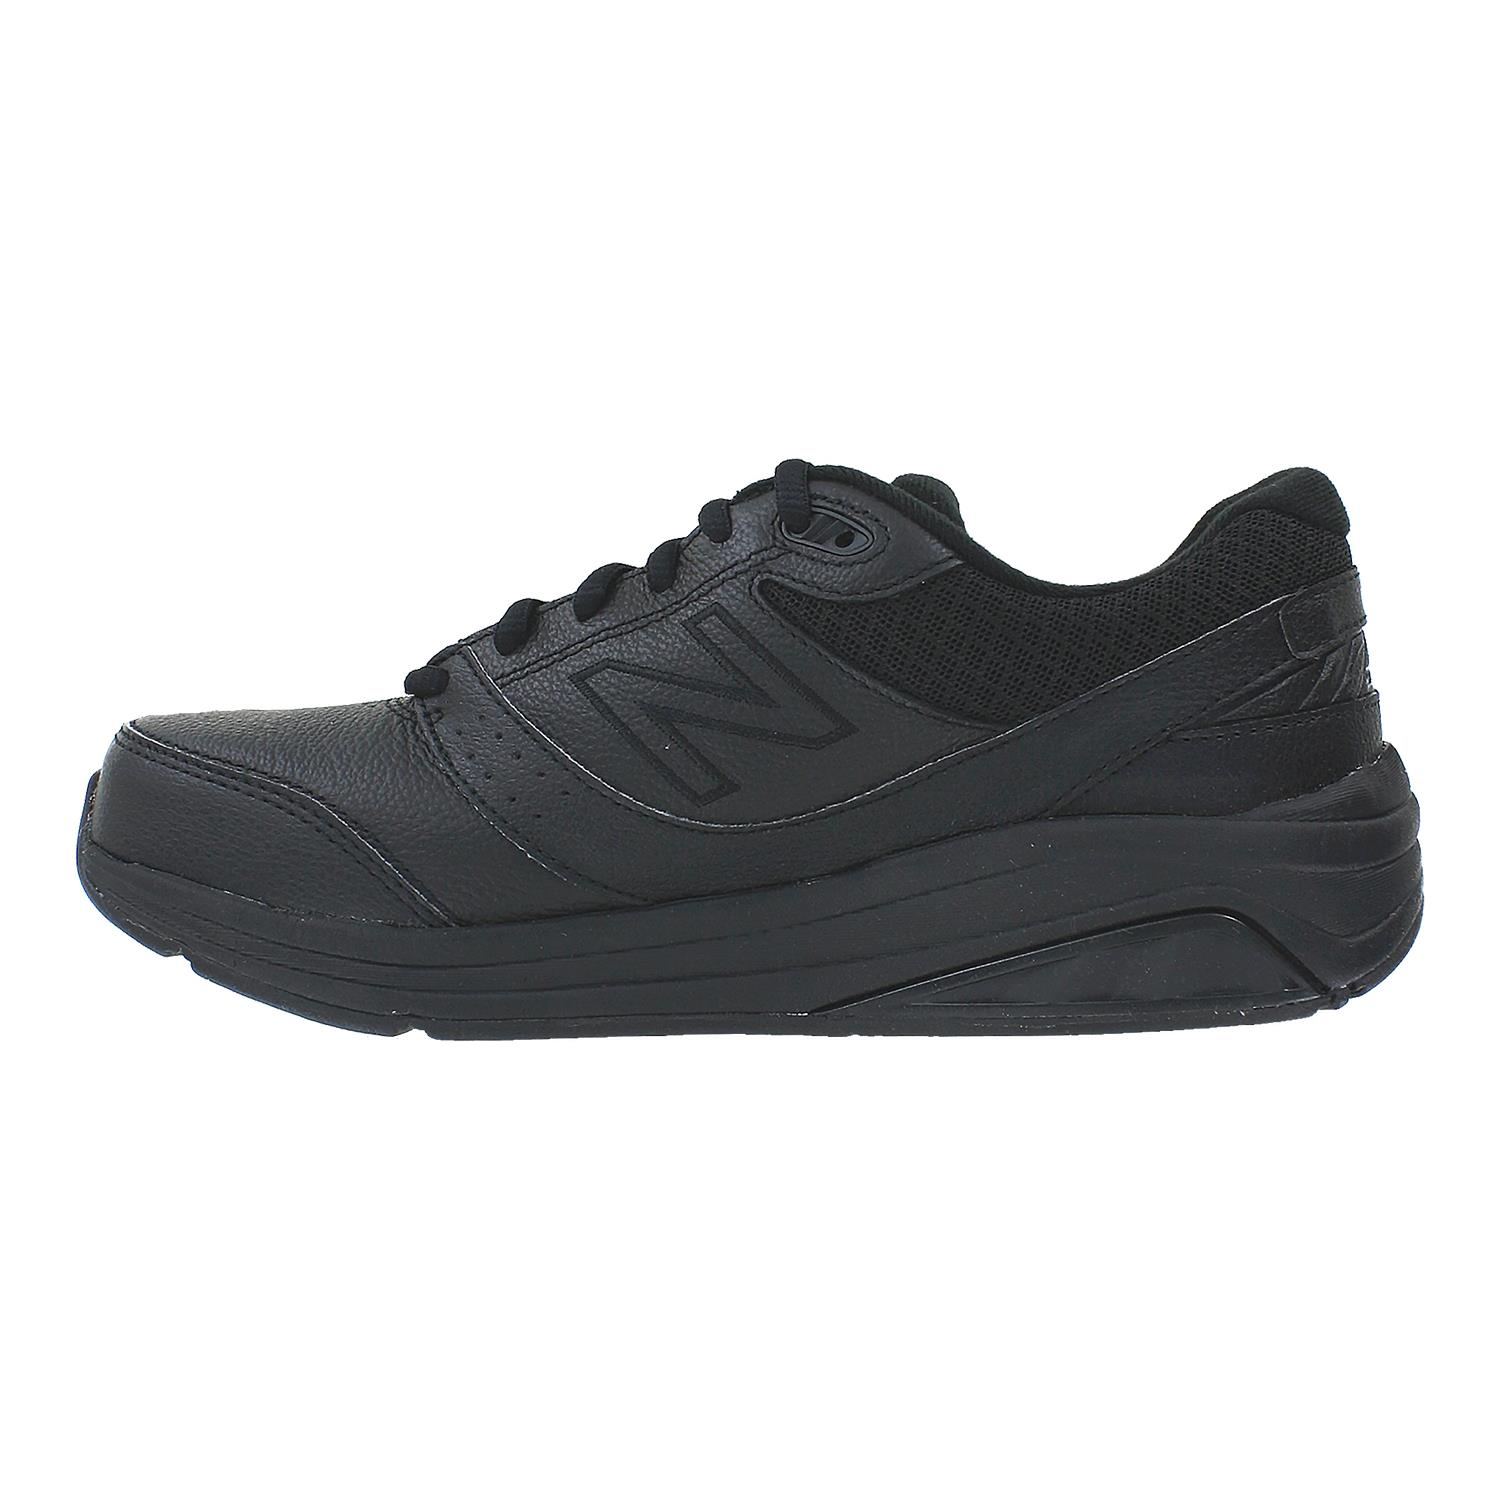 New Balance Womens WW928BK2 Low Top Lace Up Walking Shoes Black Size 5.5